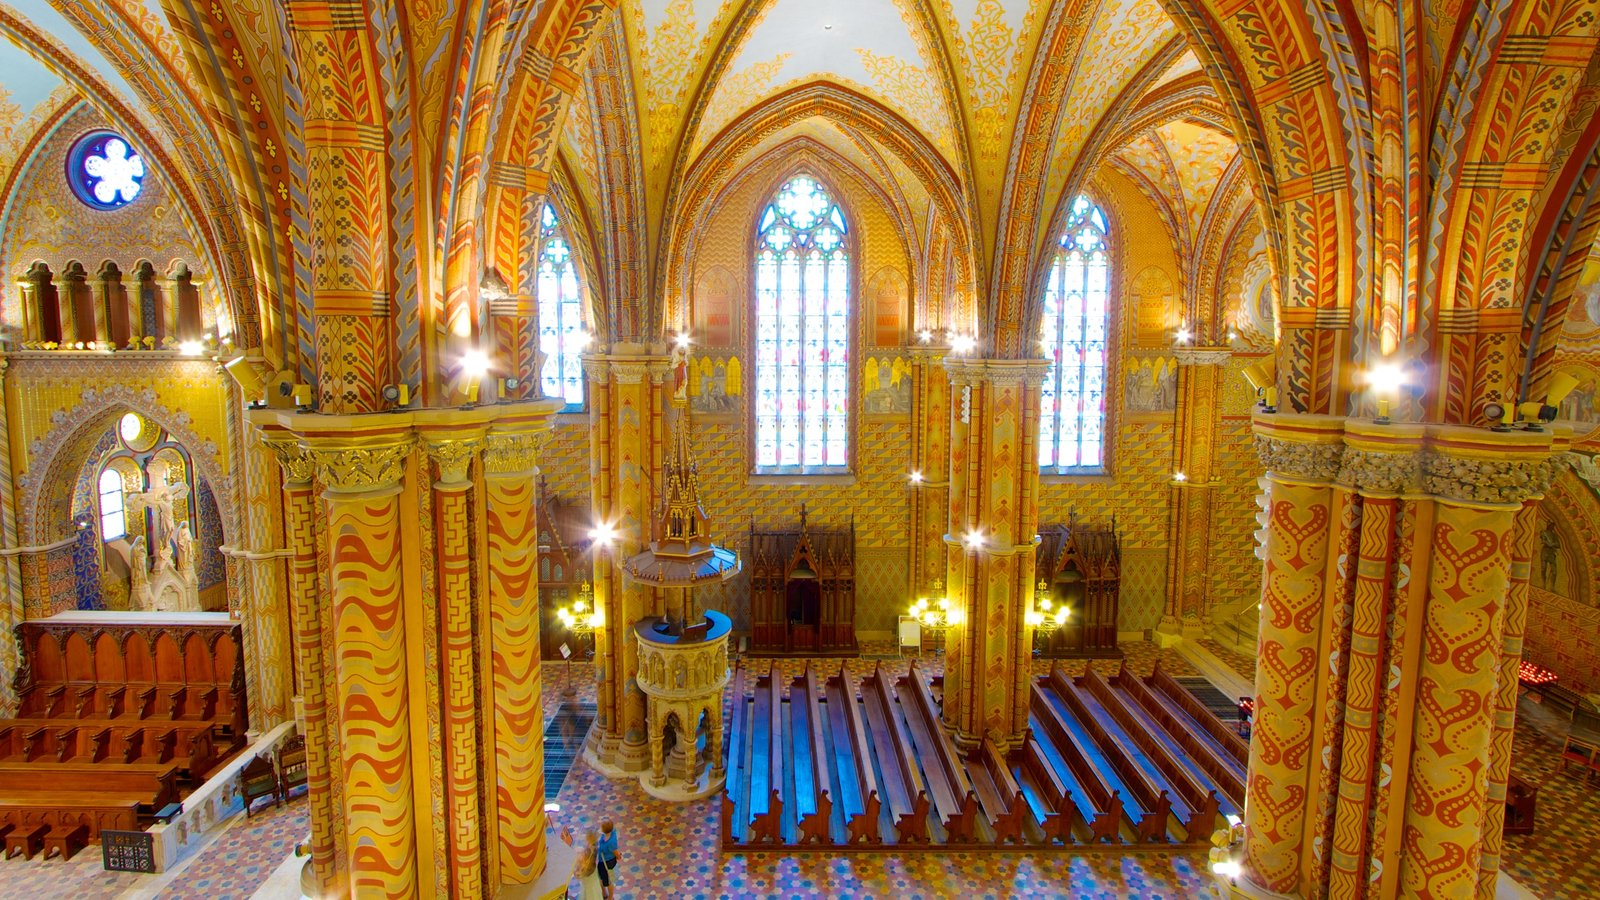 Matthias Church featuring interior views, a church or cathedral and religious elements